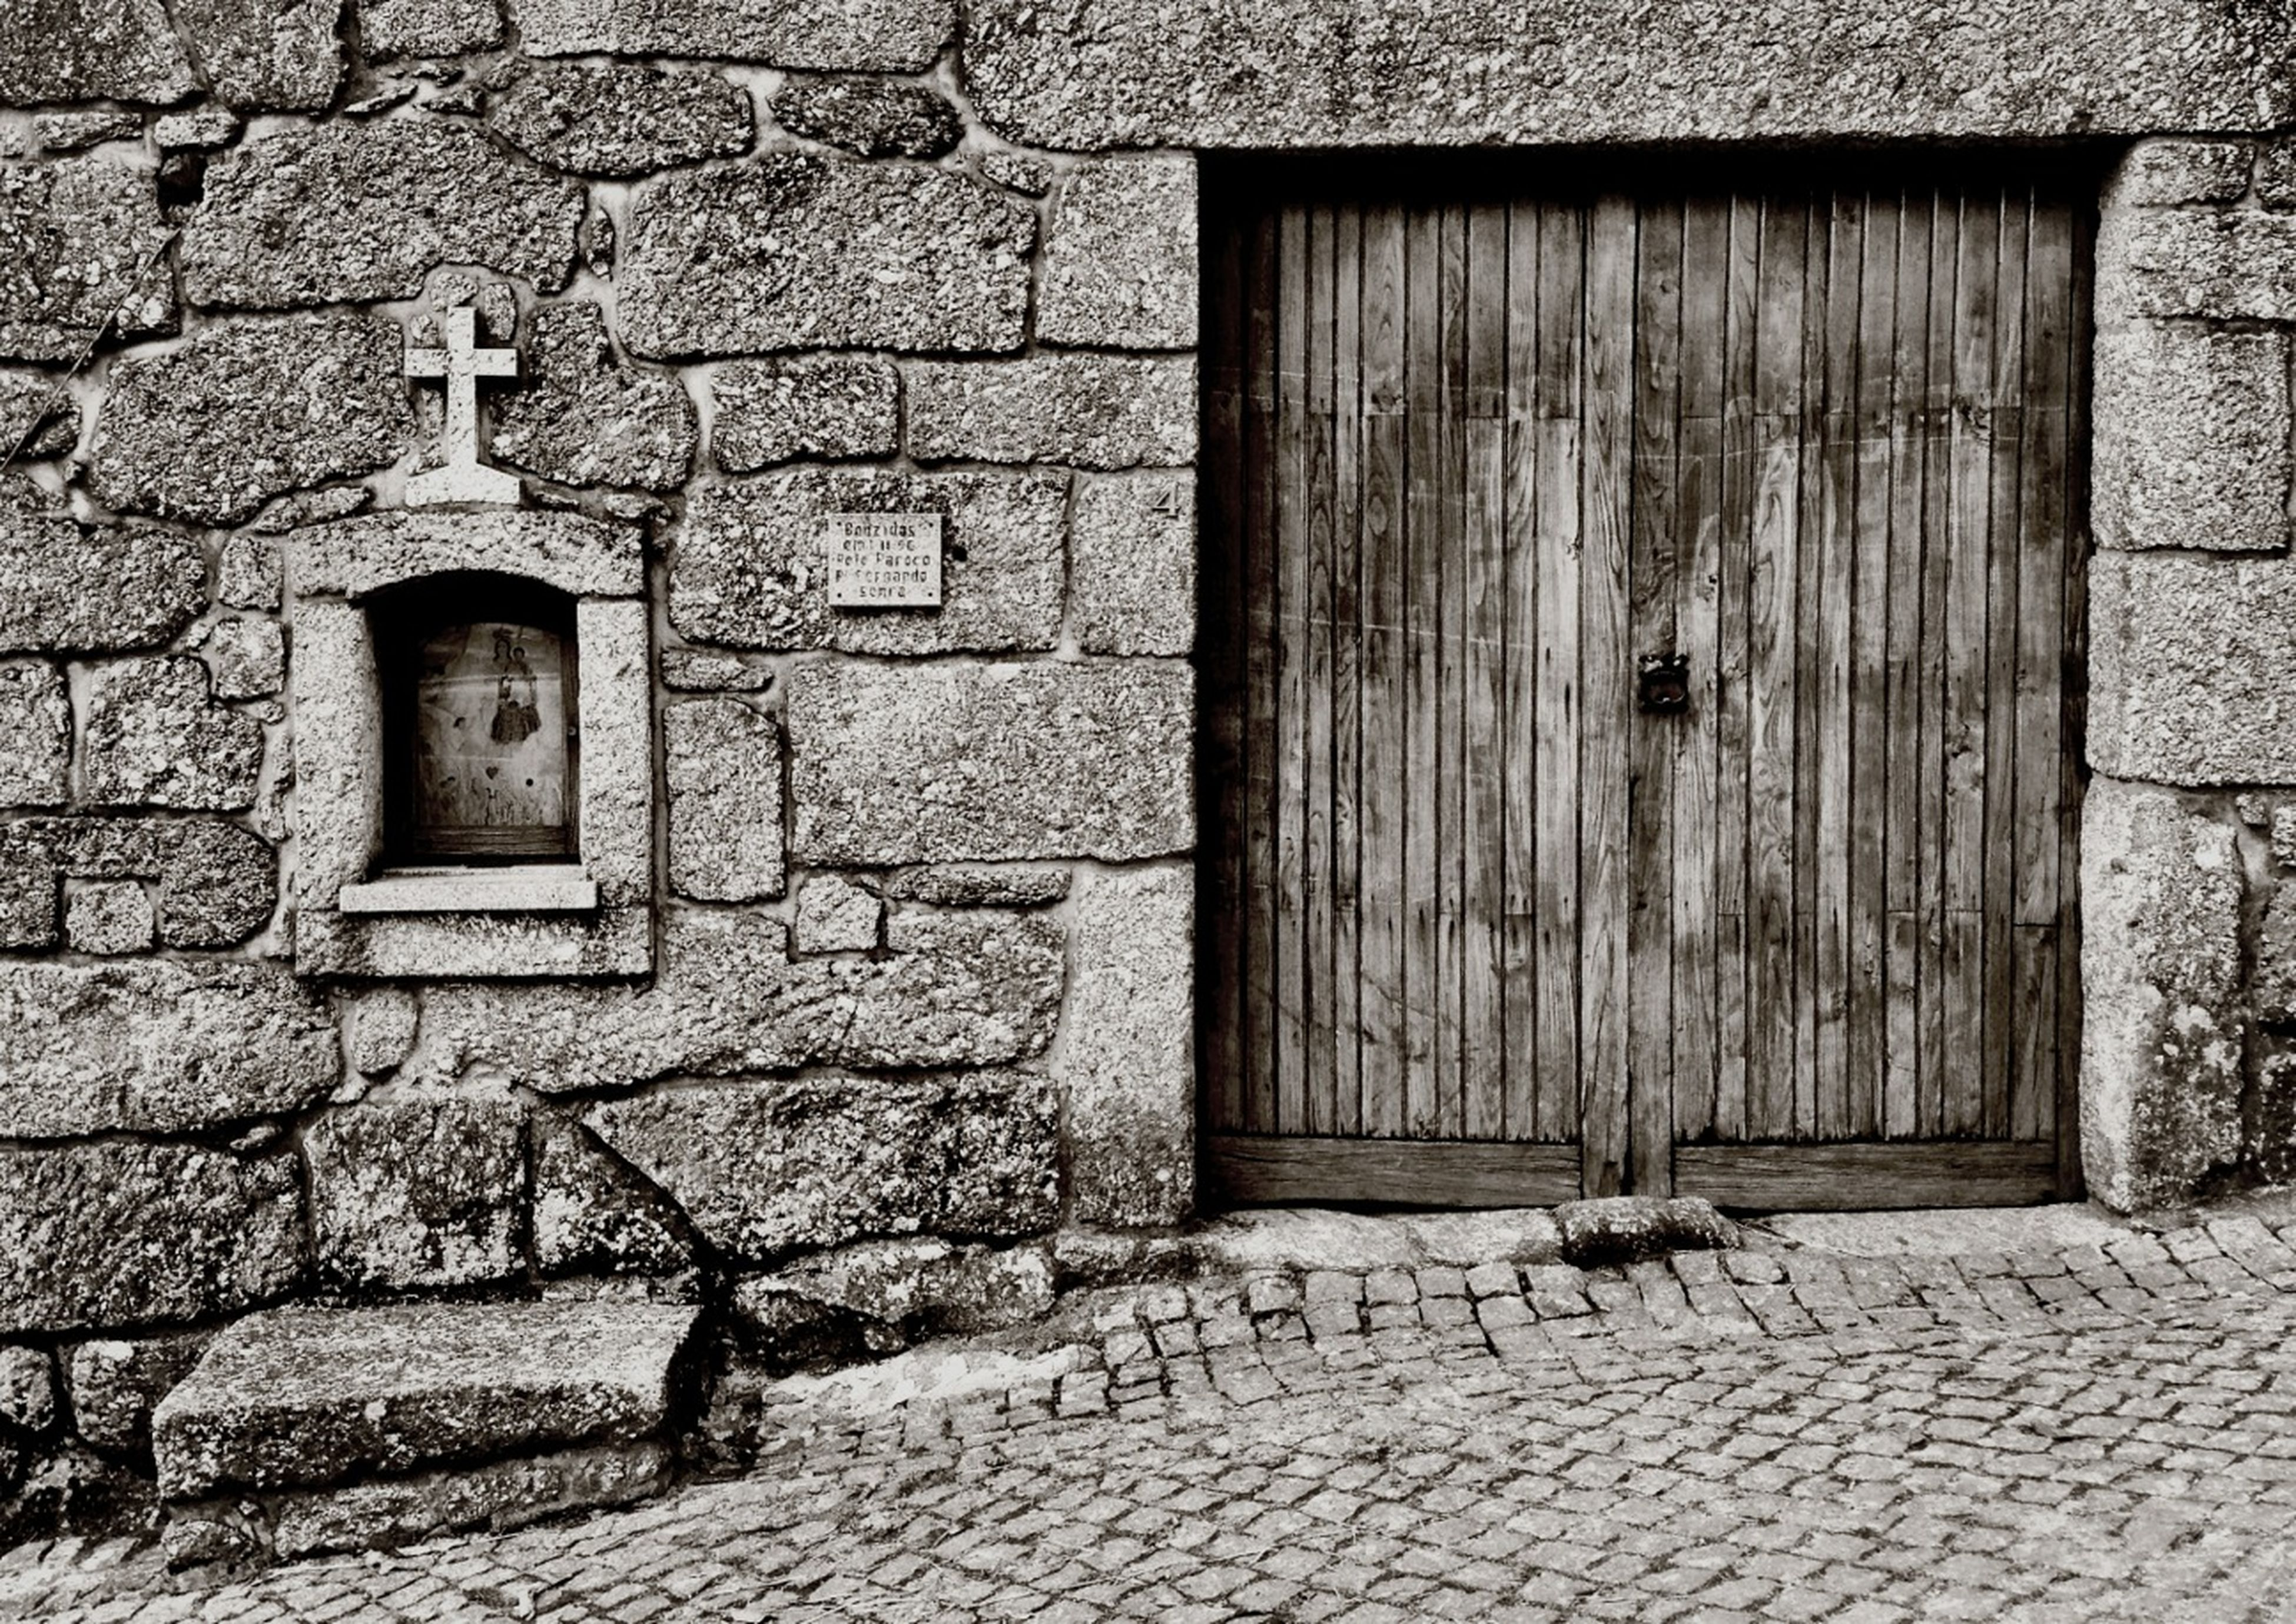 architecture, building exterior, built structure, brick wall, stone wall, door, house, window, wall - building feature, old, cobblestone, closed, wall, entrance, day, outdoors, residential structure, facade, no people, building